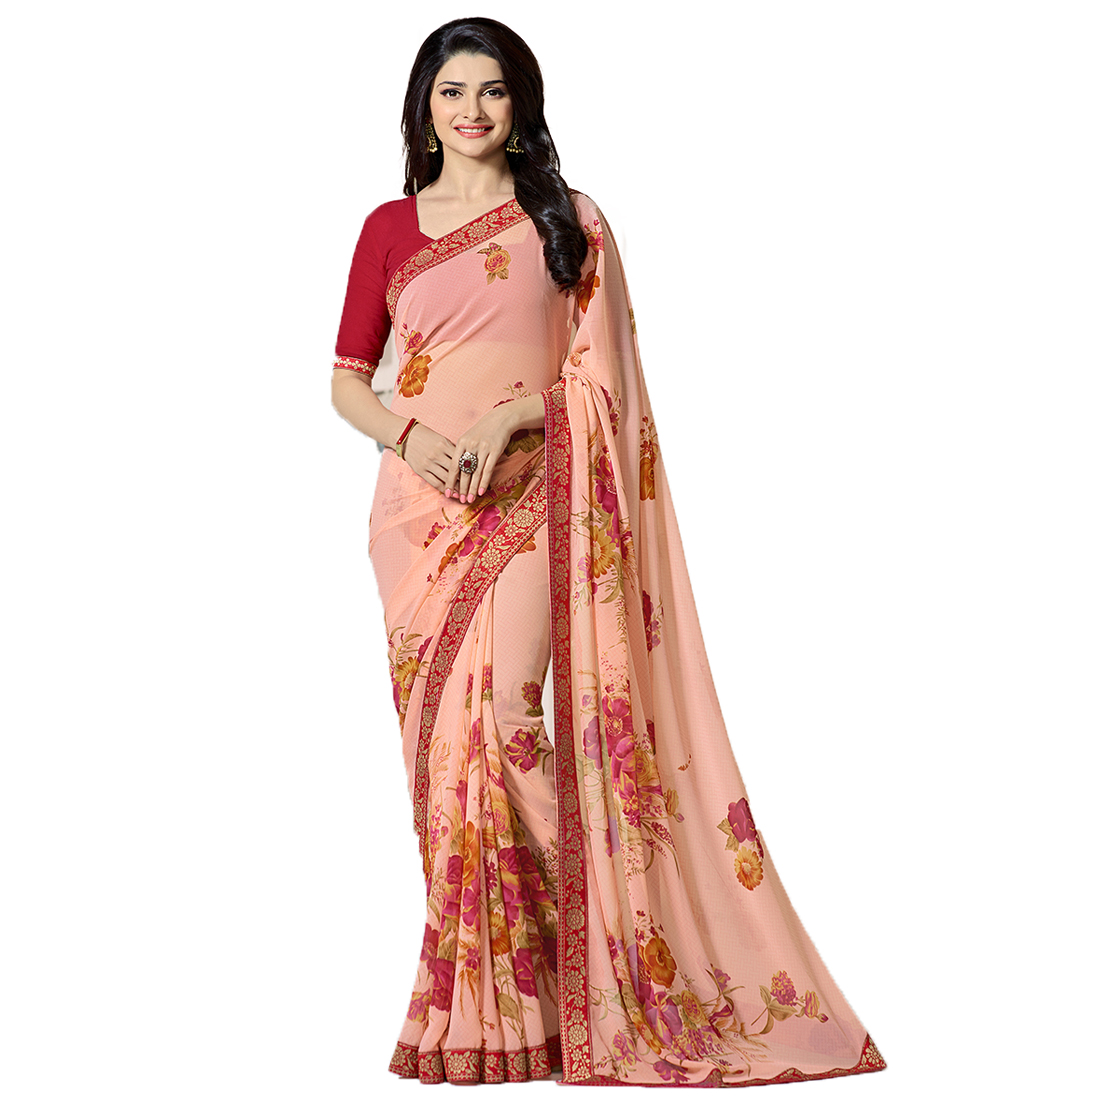 Indian Style Sarees New Arrivals Latest Women's Peach Georgette Printed Saree With Blouse Bollywood Latest Designer